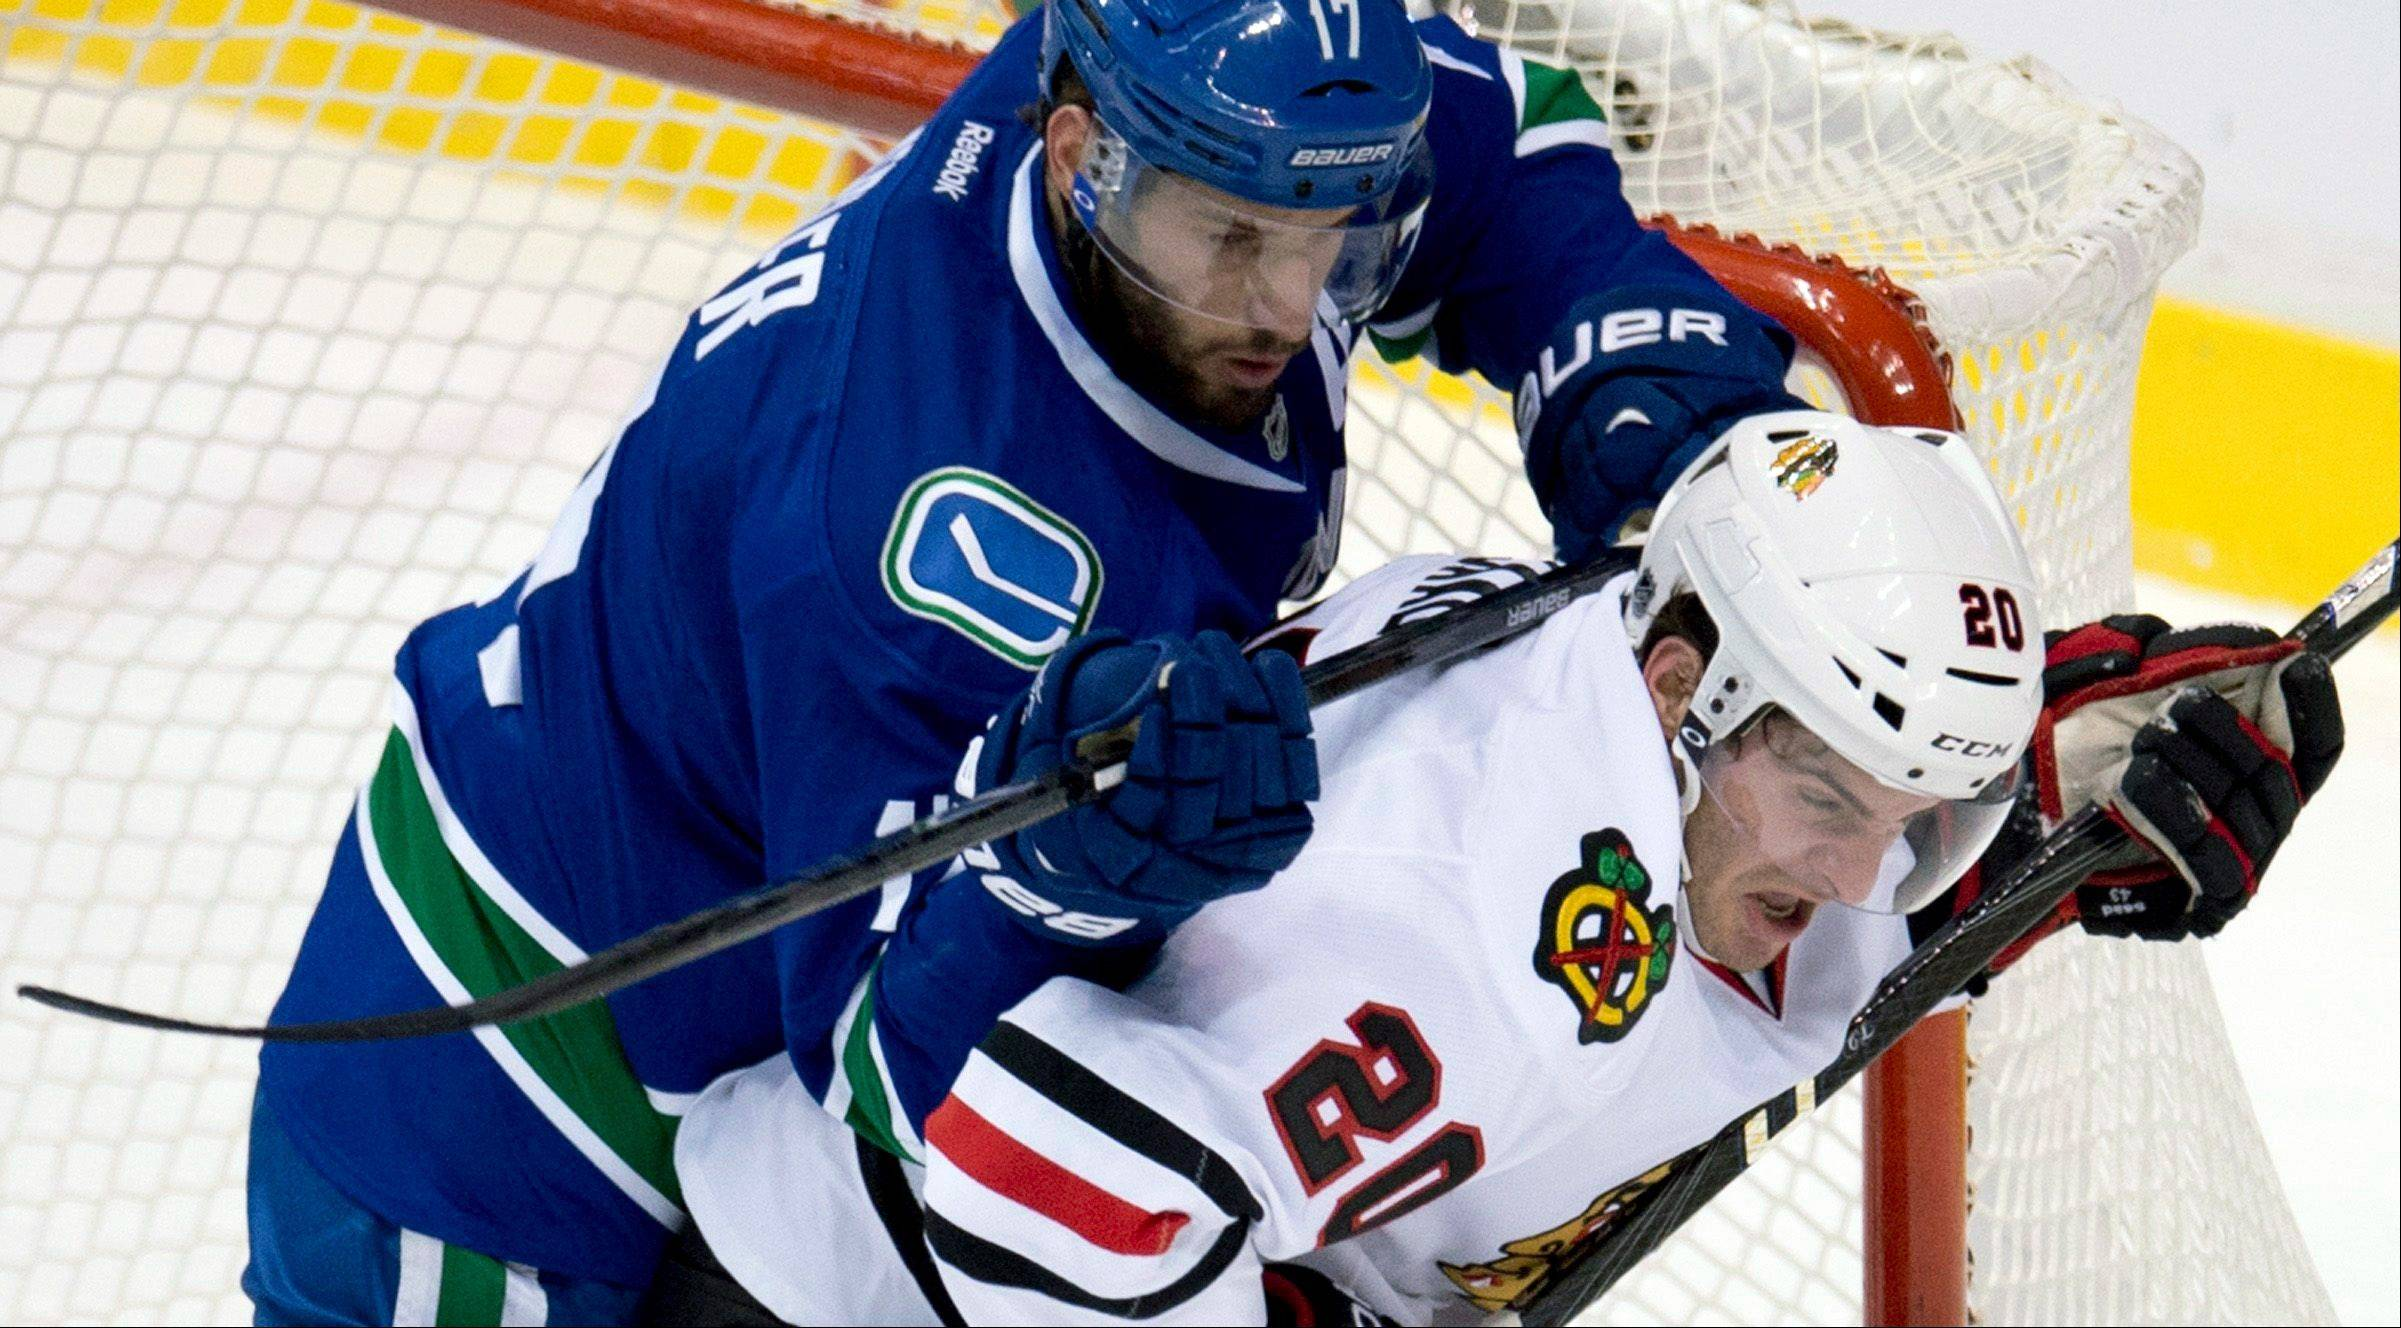 Vancouver Canucks center Ryan Kesler (17) tries to clear Chicago Blackhawks left wing Brandon Saad (20) from in front of the Canucks net during the first period of an NHL hockey game in Vancouver, B.C. on Monday, April 22, 2013.